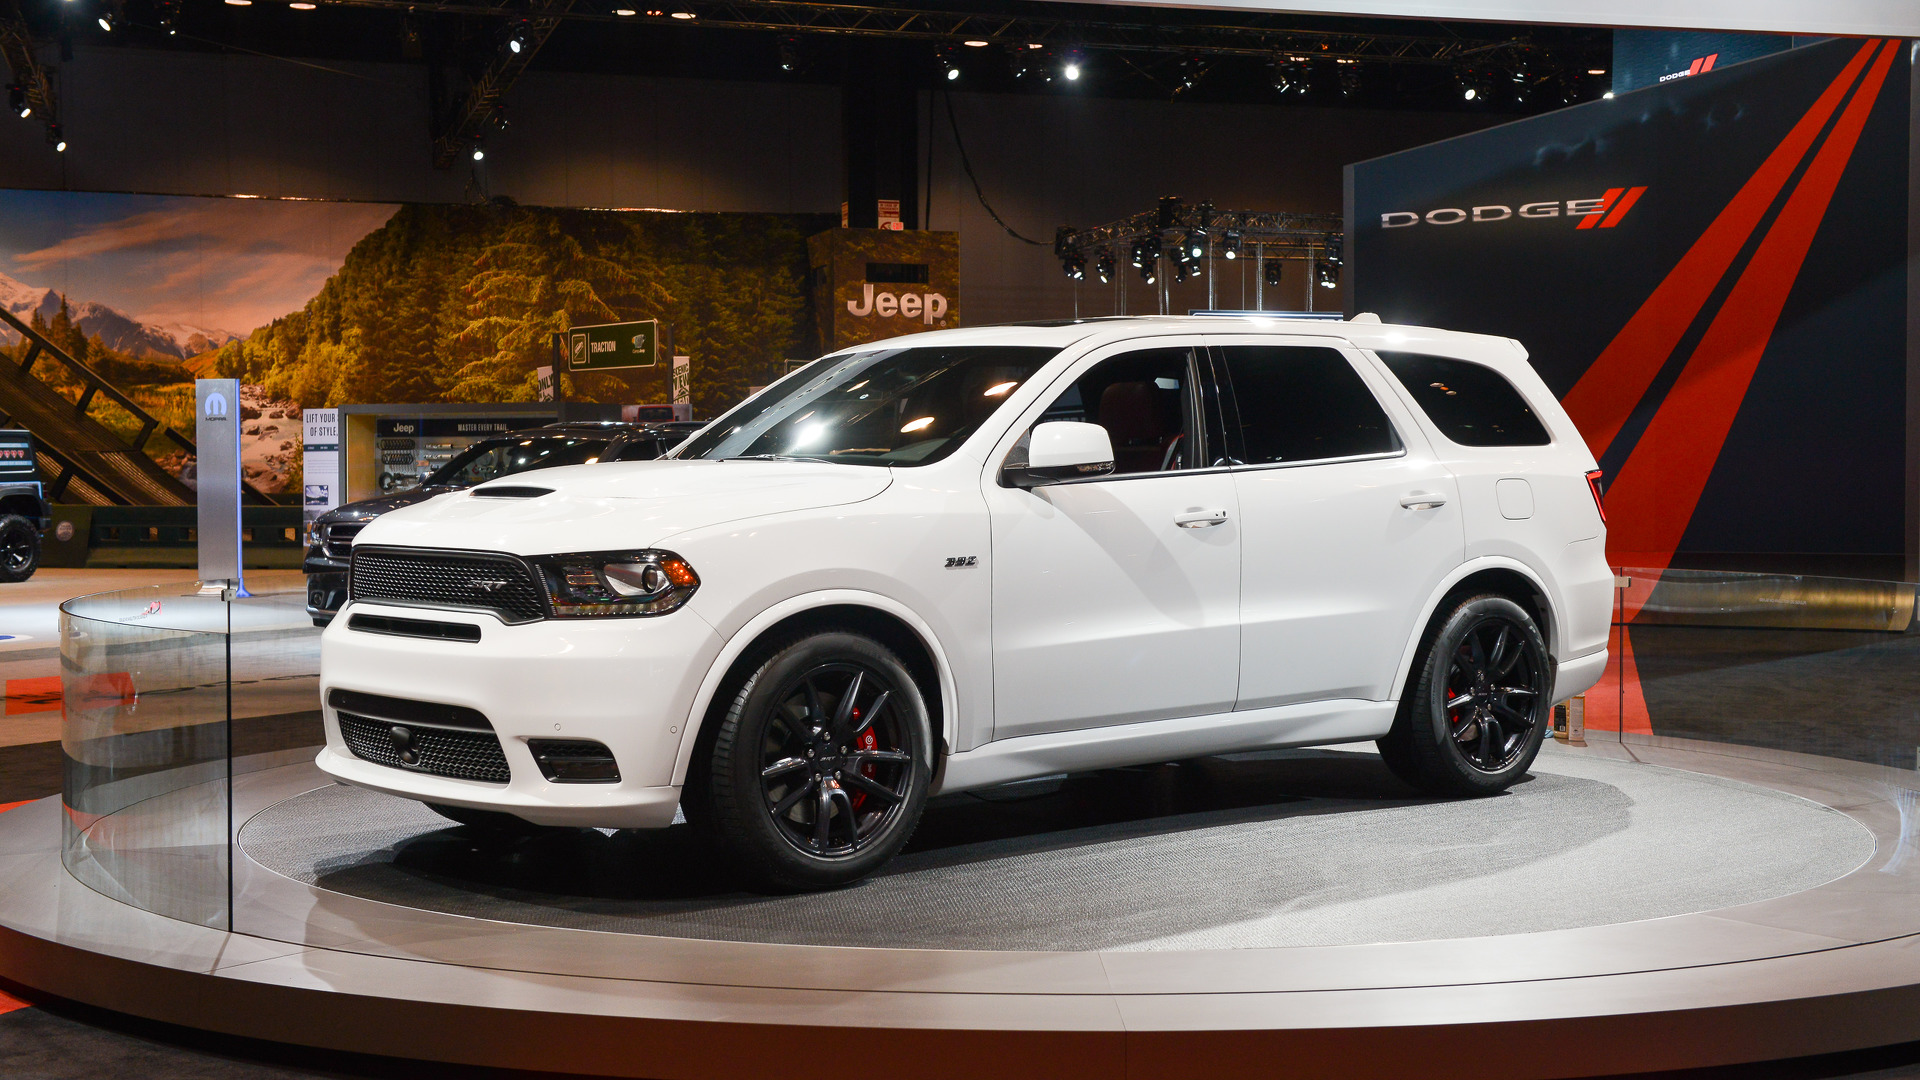 Dodge Durango Wallpaper Posted By Christopher Johnson